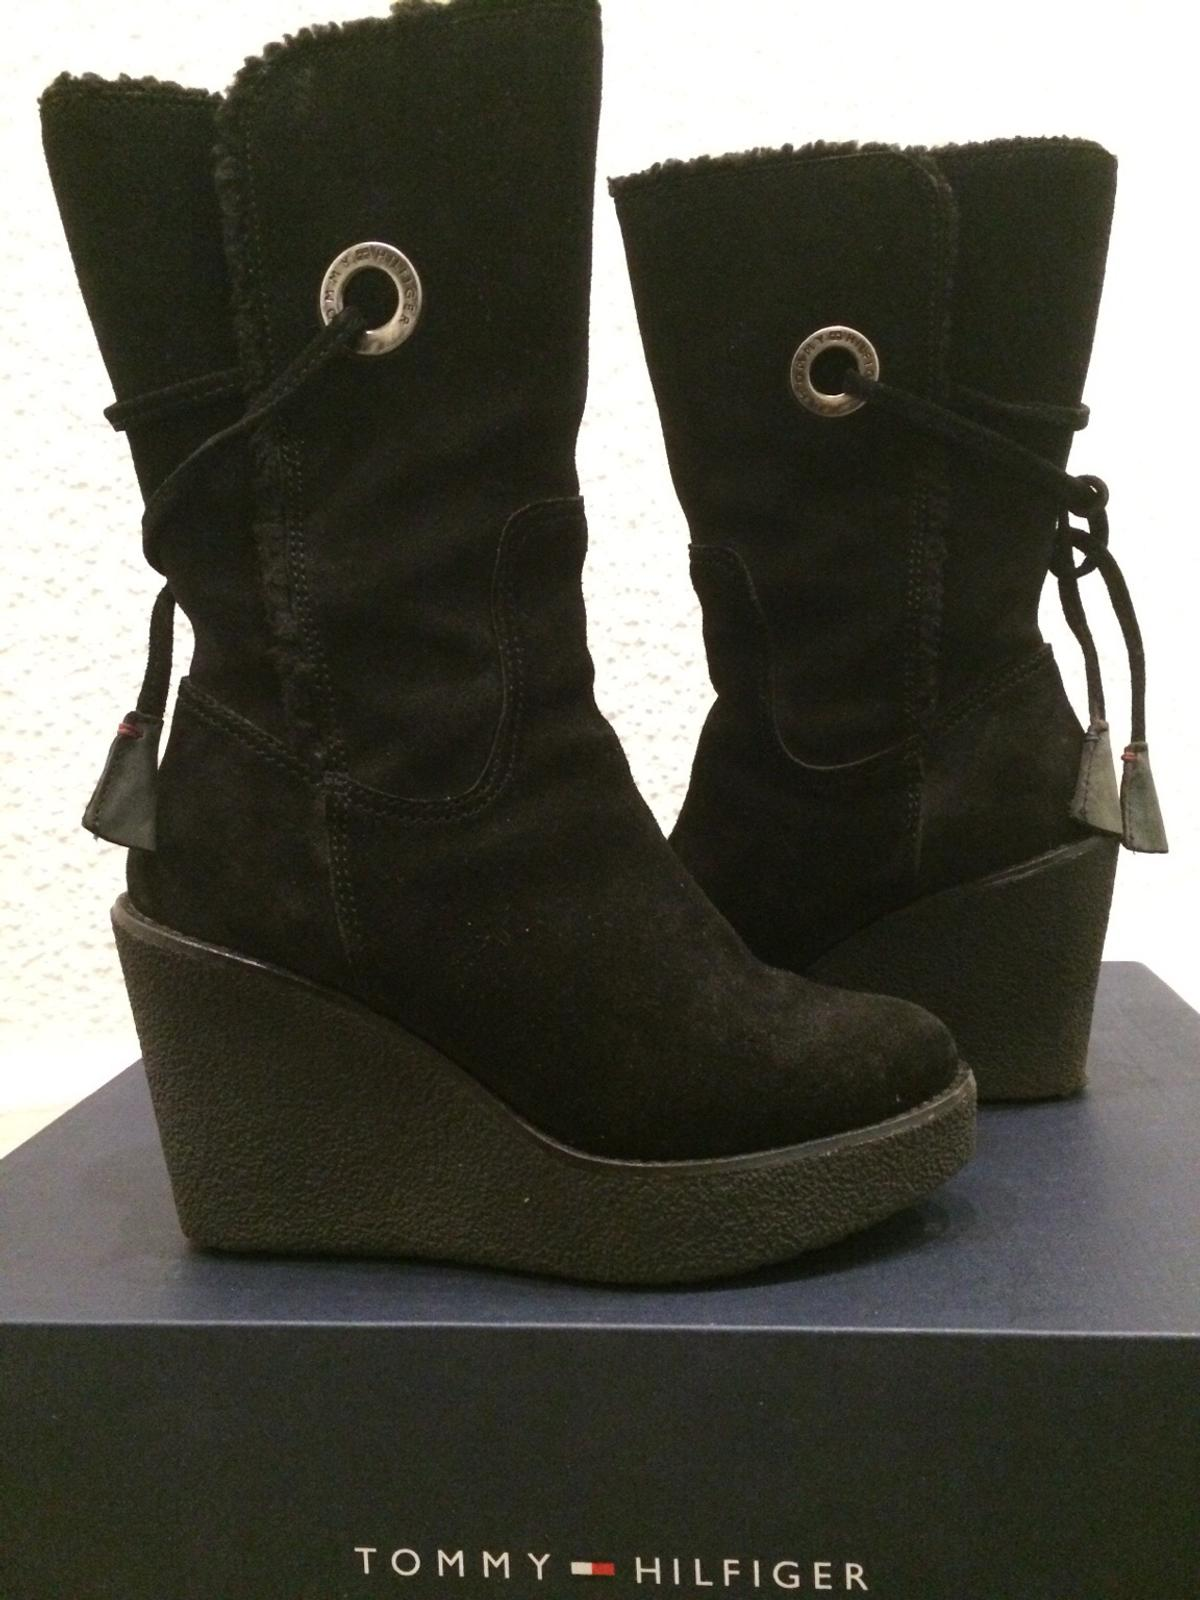 info for a9059 b9662 Tommy hilfiger Stiefel Boots Keilabsatz Gr 36